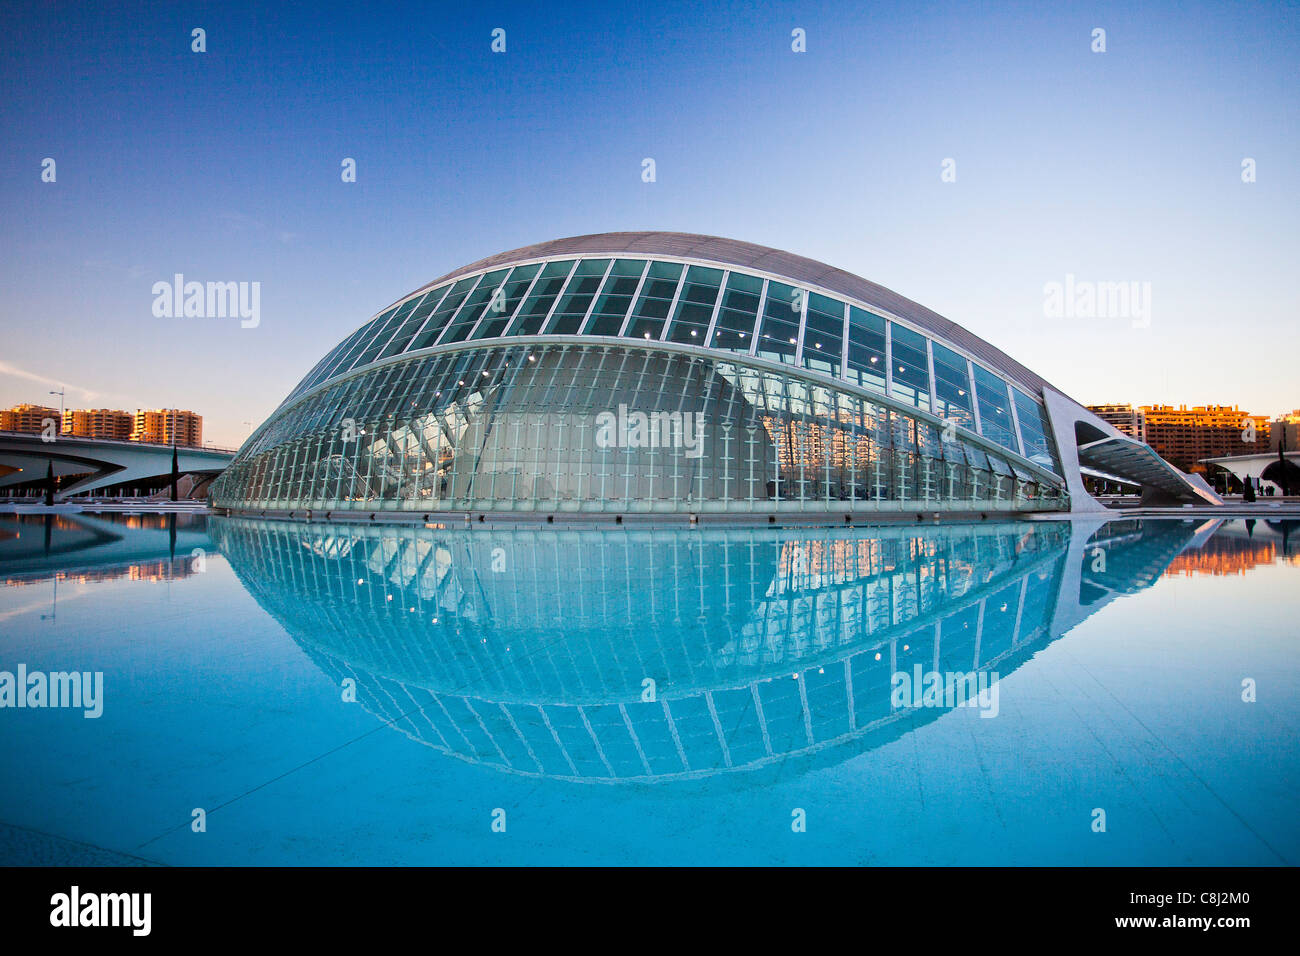 Spain, Europe, Valencia, City of Arts and Science, Calatrava, architecture, modern, Hemisferic, water - Stock Image